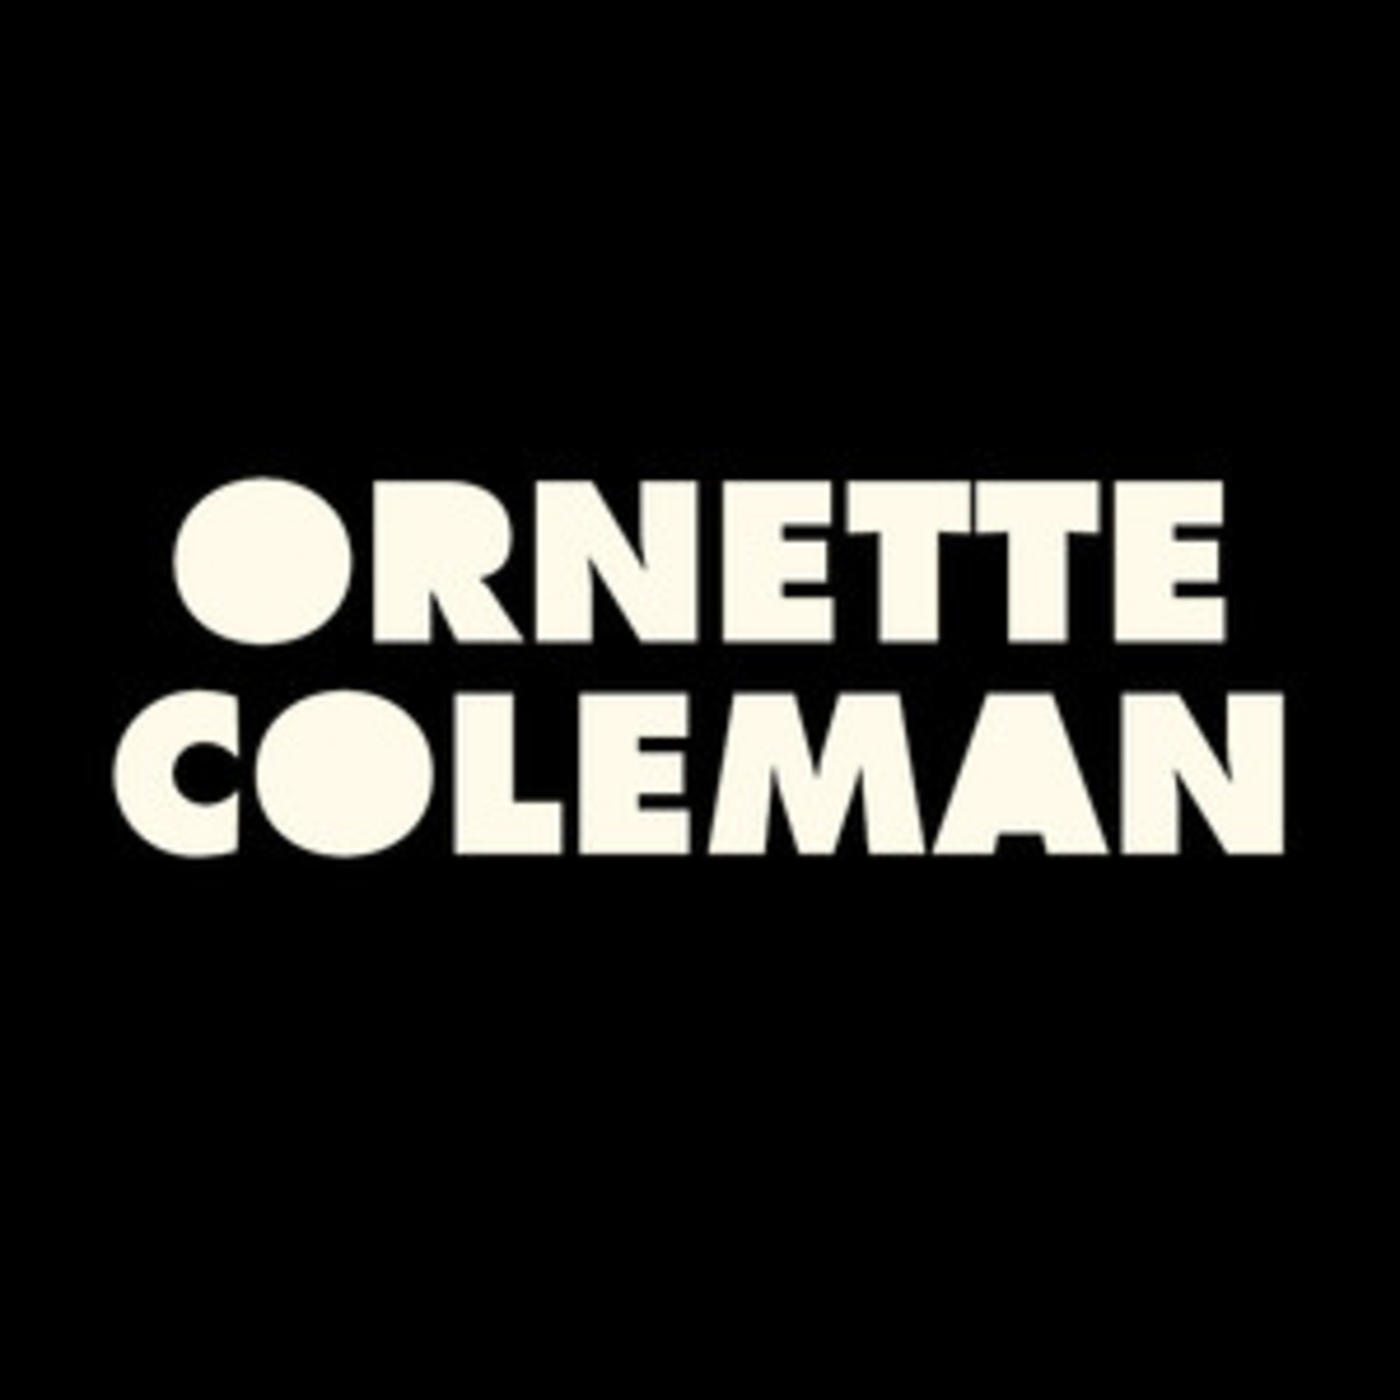 Official Ornette Coleman playlist - Lonely Woman, Peace, Eventually, Congeniality, Chronology, Free